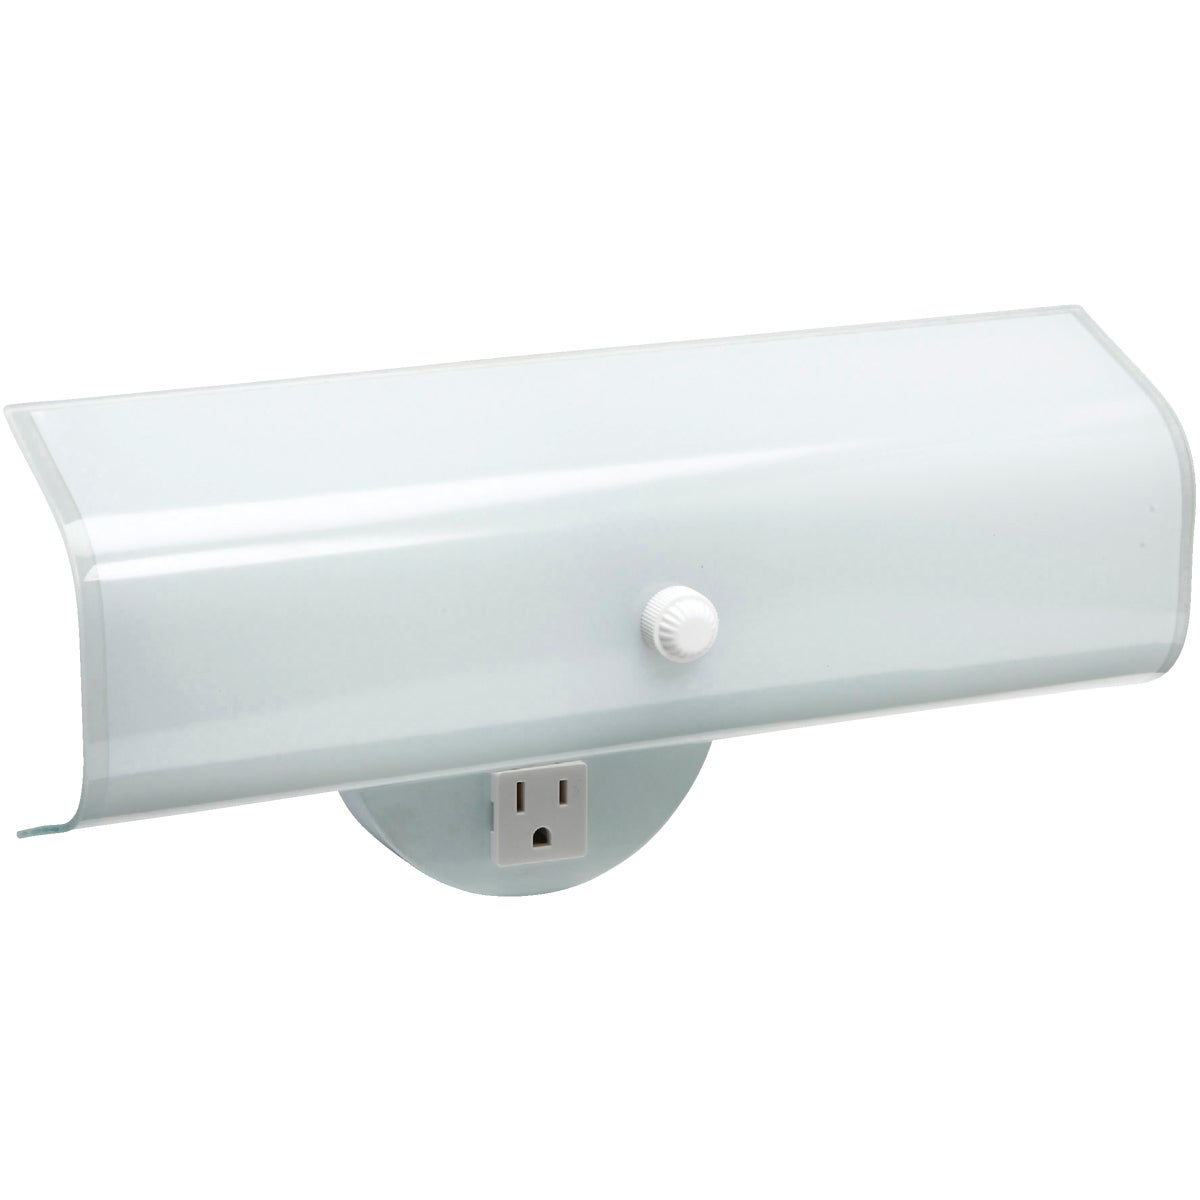 2BULB WHT WALL FIXTURE - IVL2WH by Canarm Gs